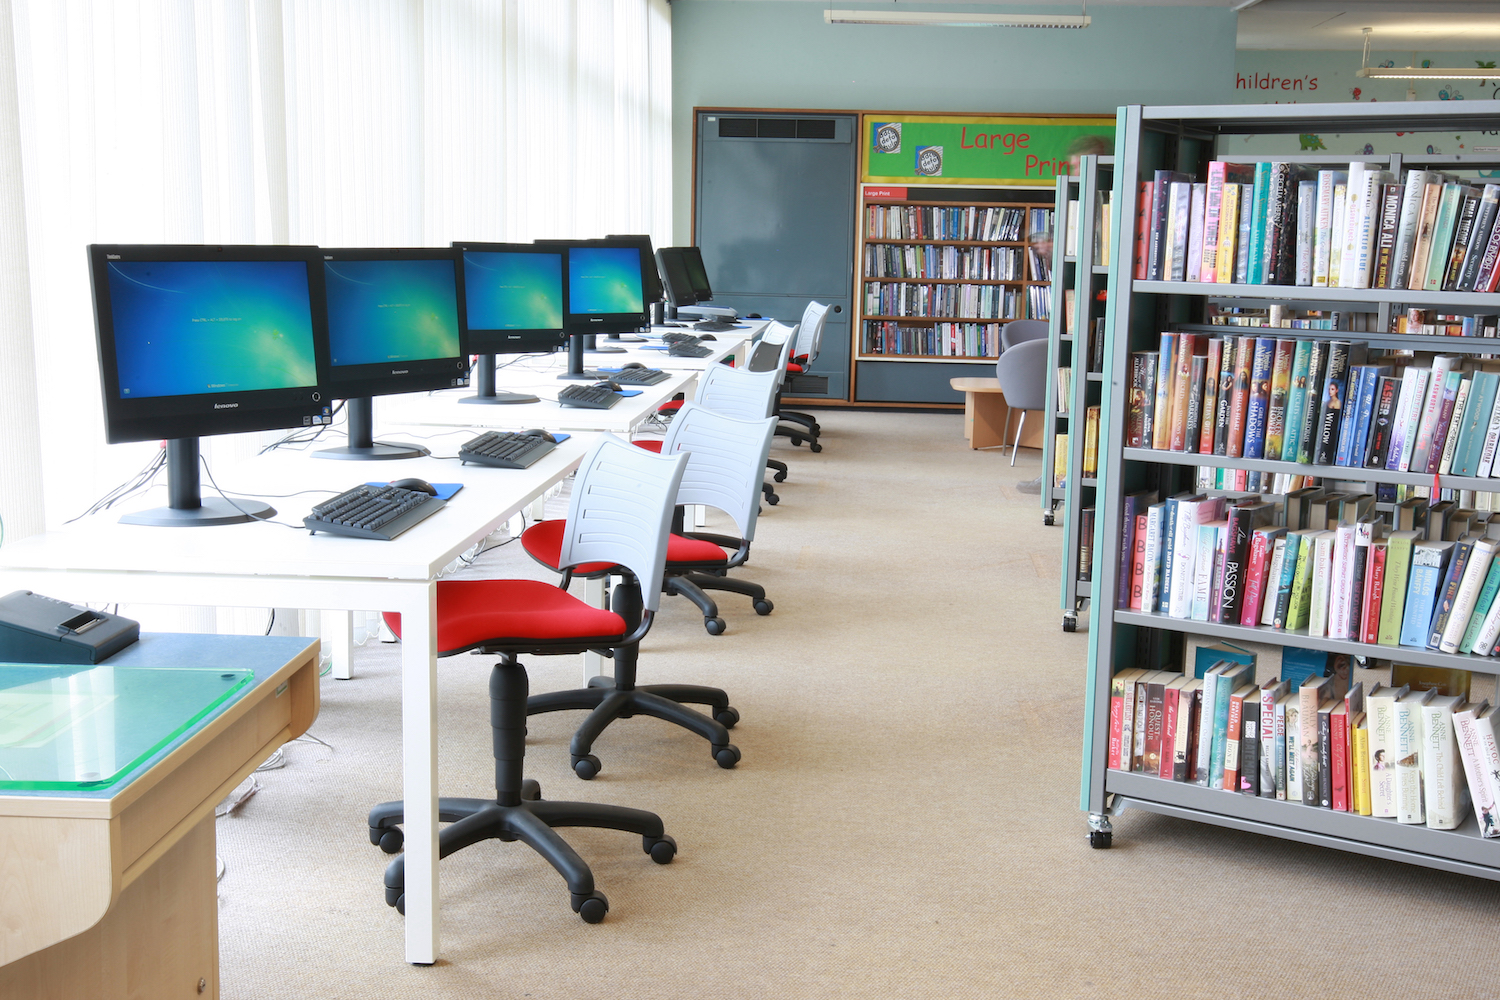 Library Shelving And Furniture13.jpg